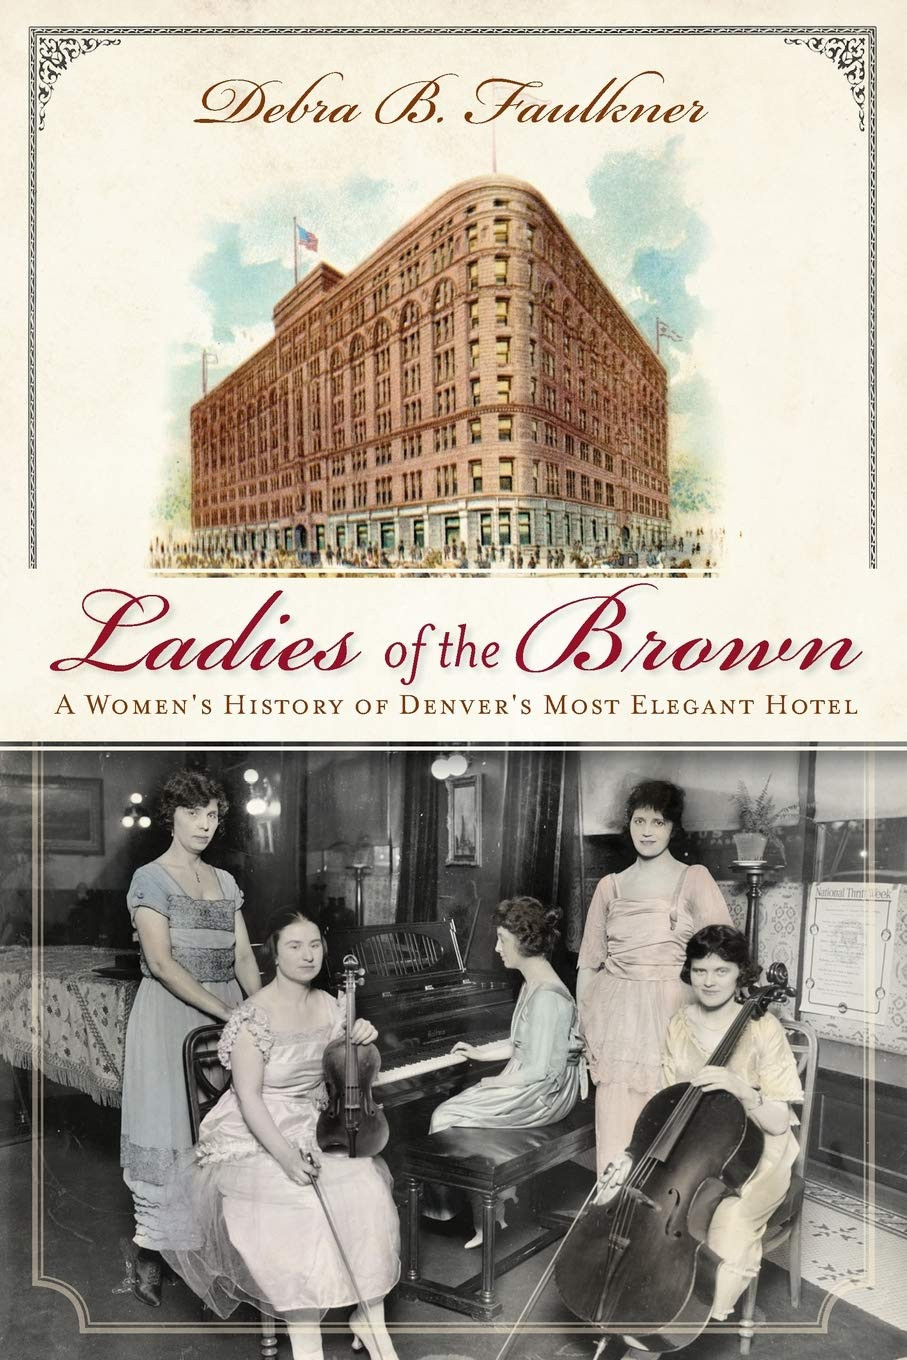 Ladies of the Brown by Debra B. Faulkner - Book Recommendation